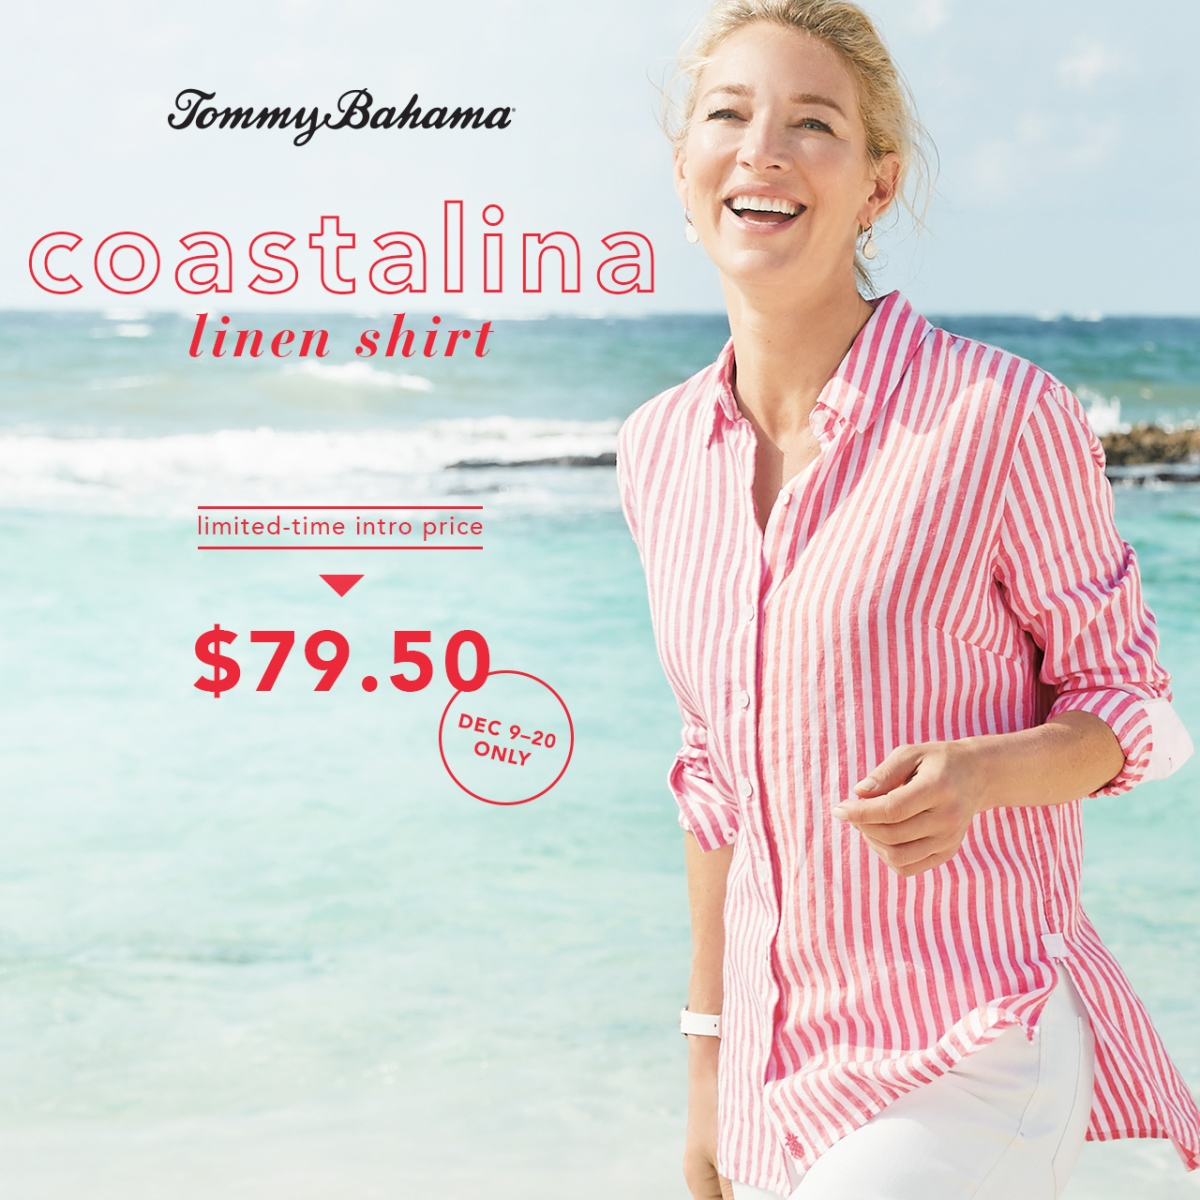 Introducing the Coastalina Linen Shirt